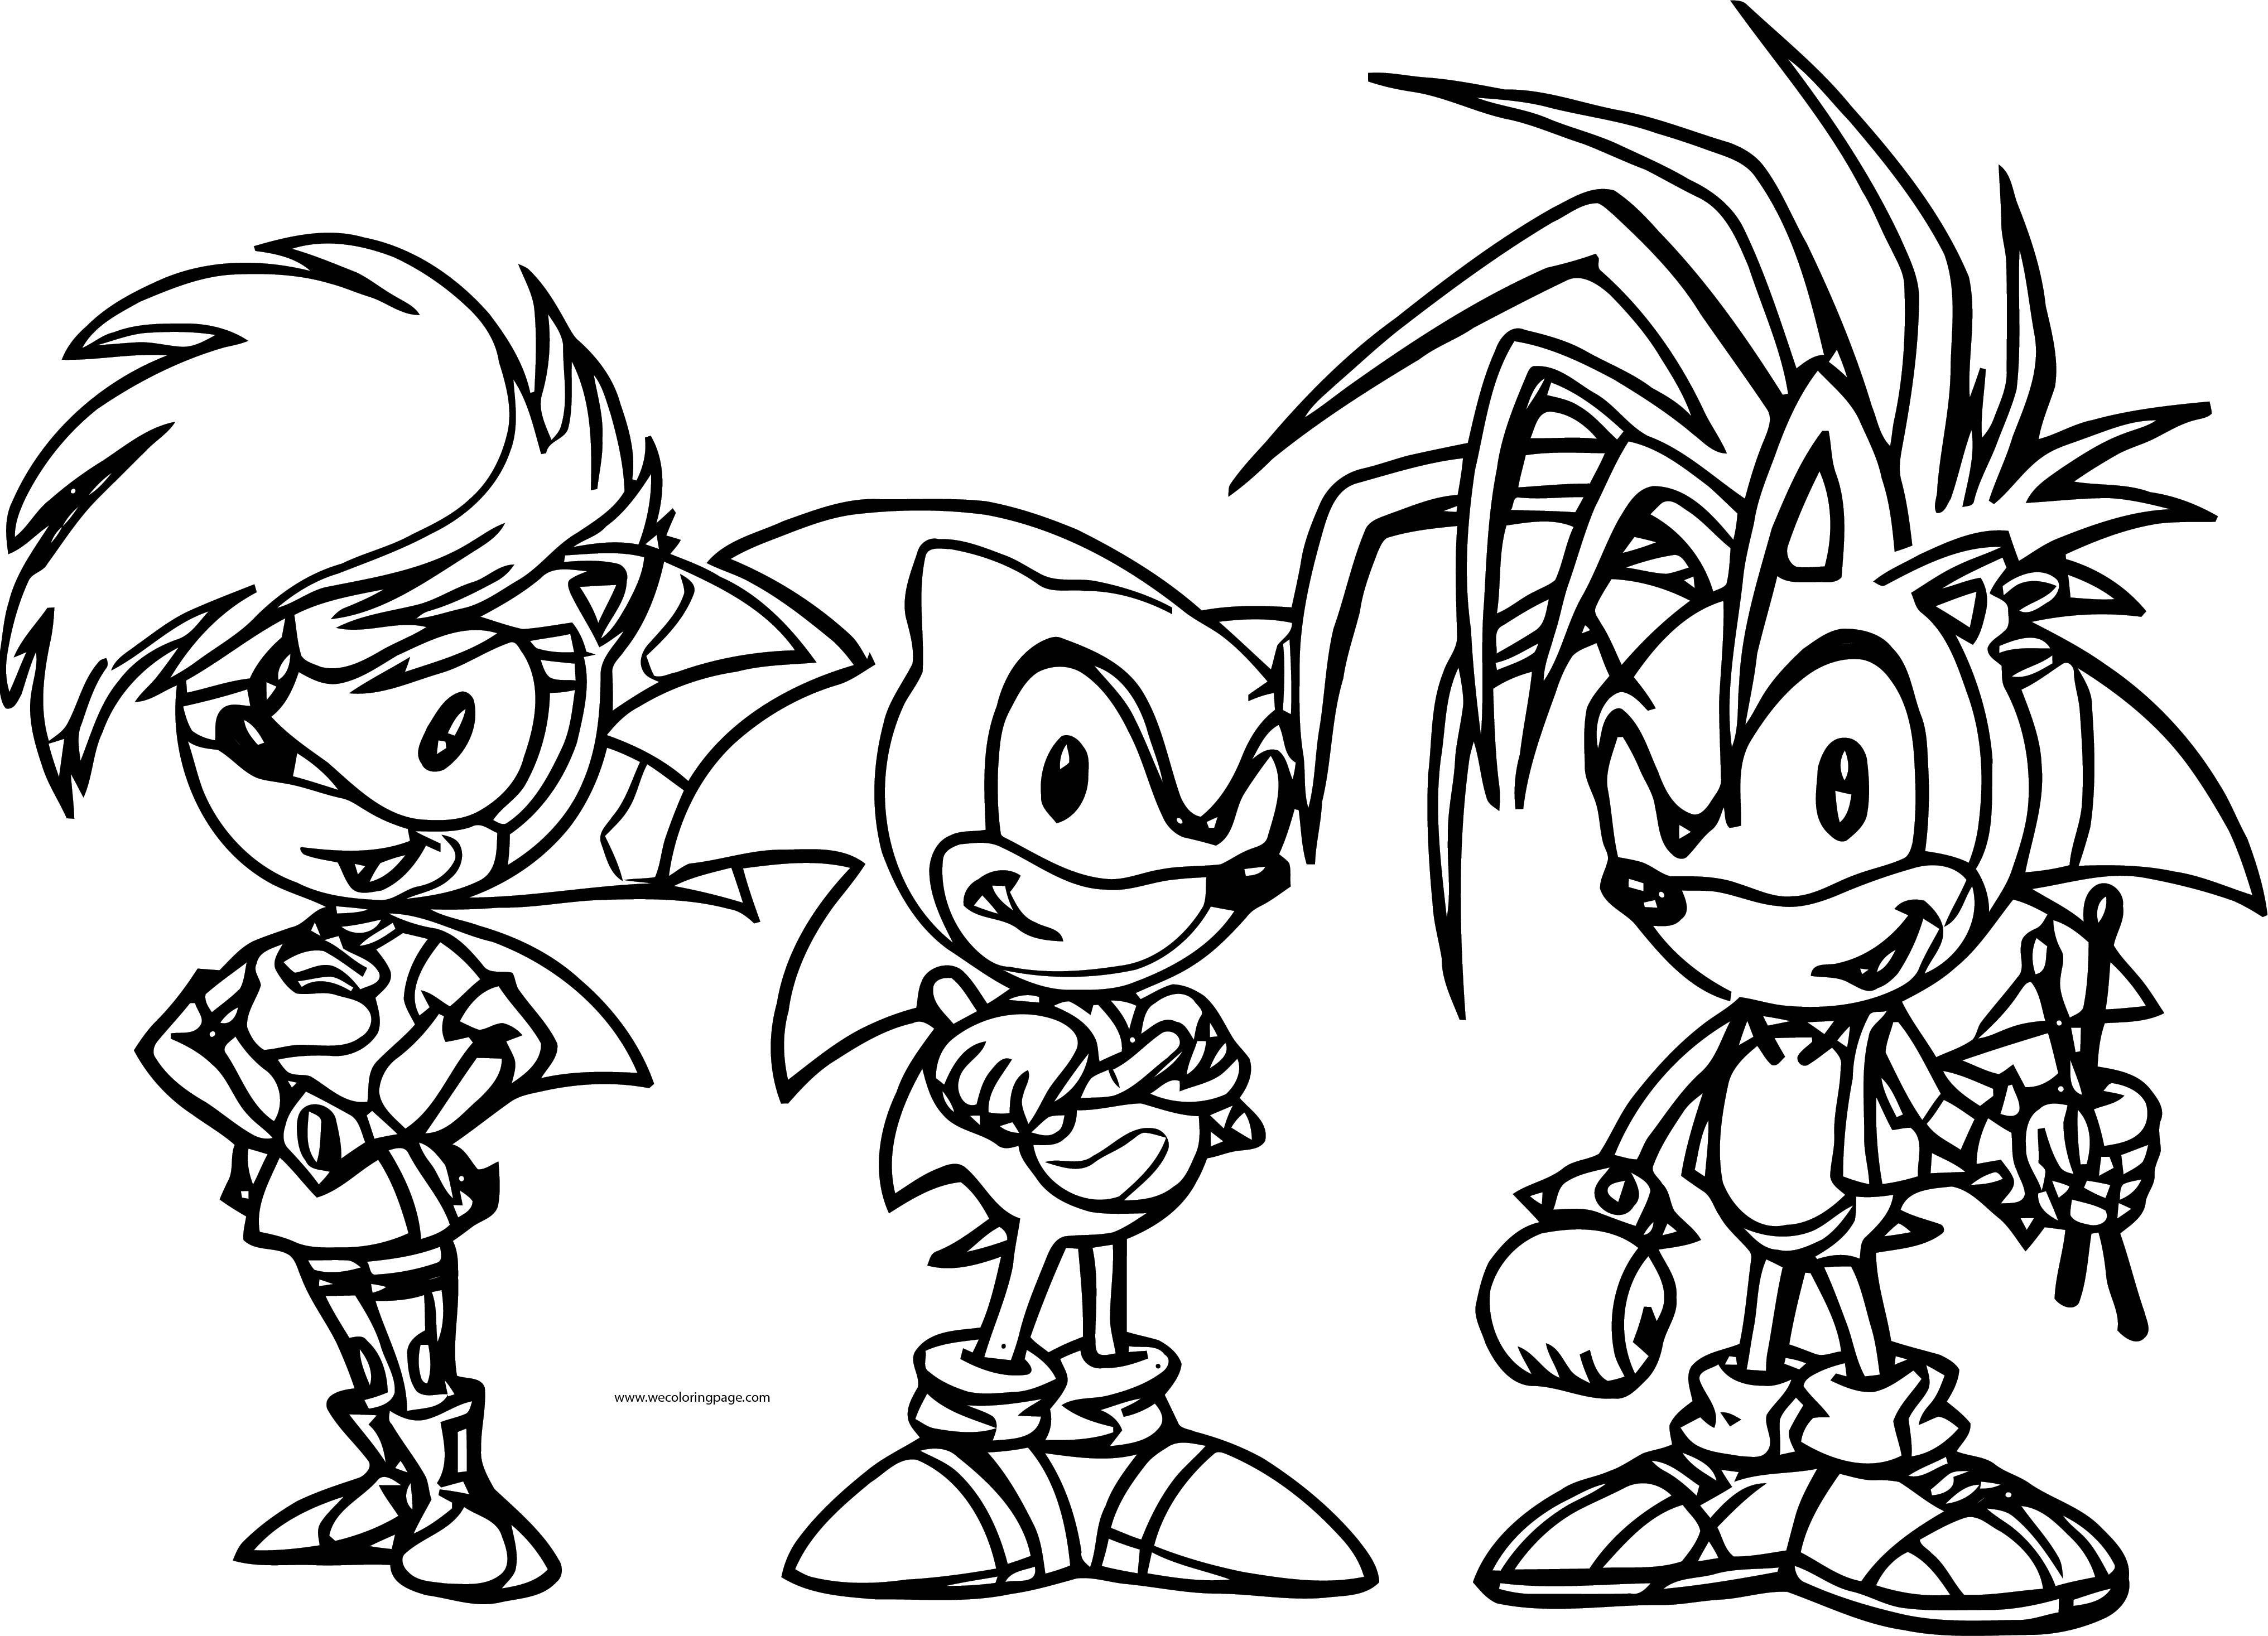 Three friends sonic the hedgehog coloring page for Sonic the hedgehog and friends coloring pages